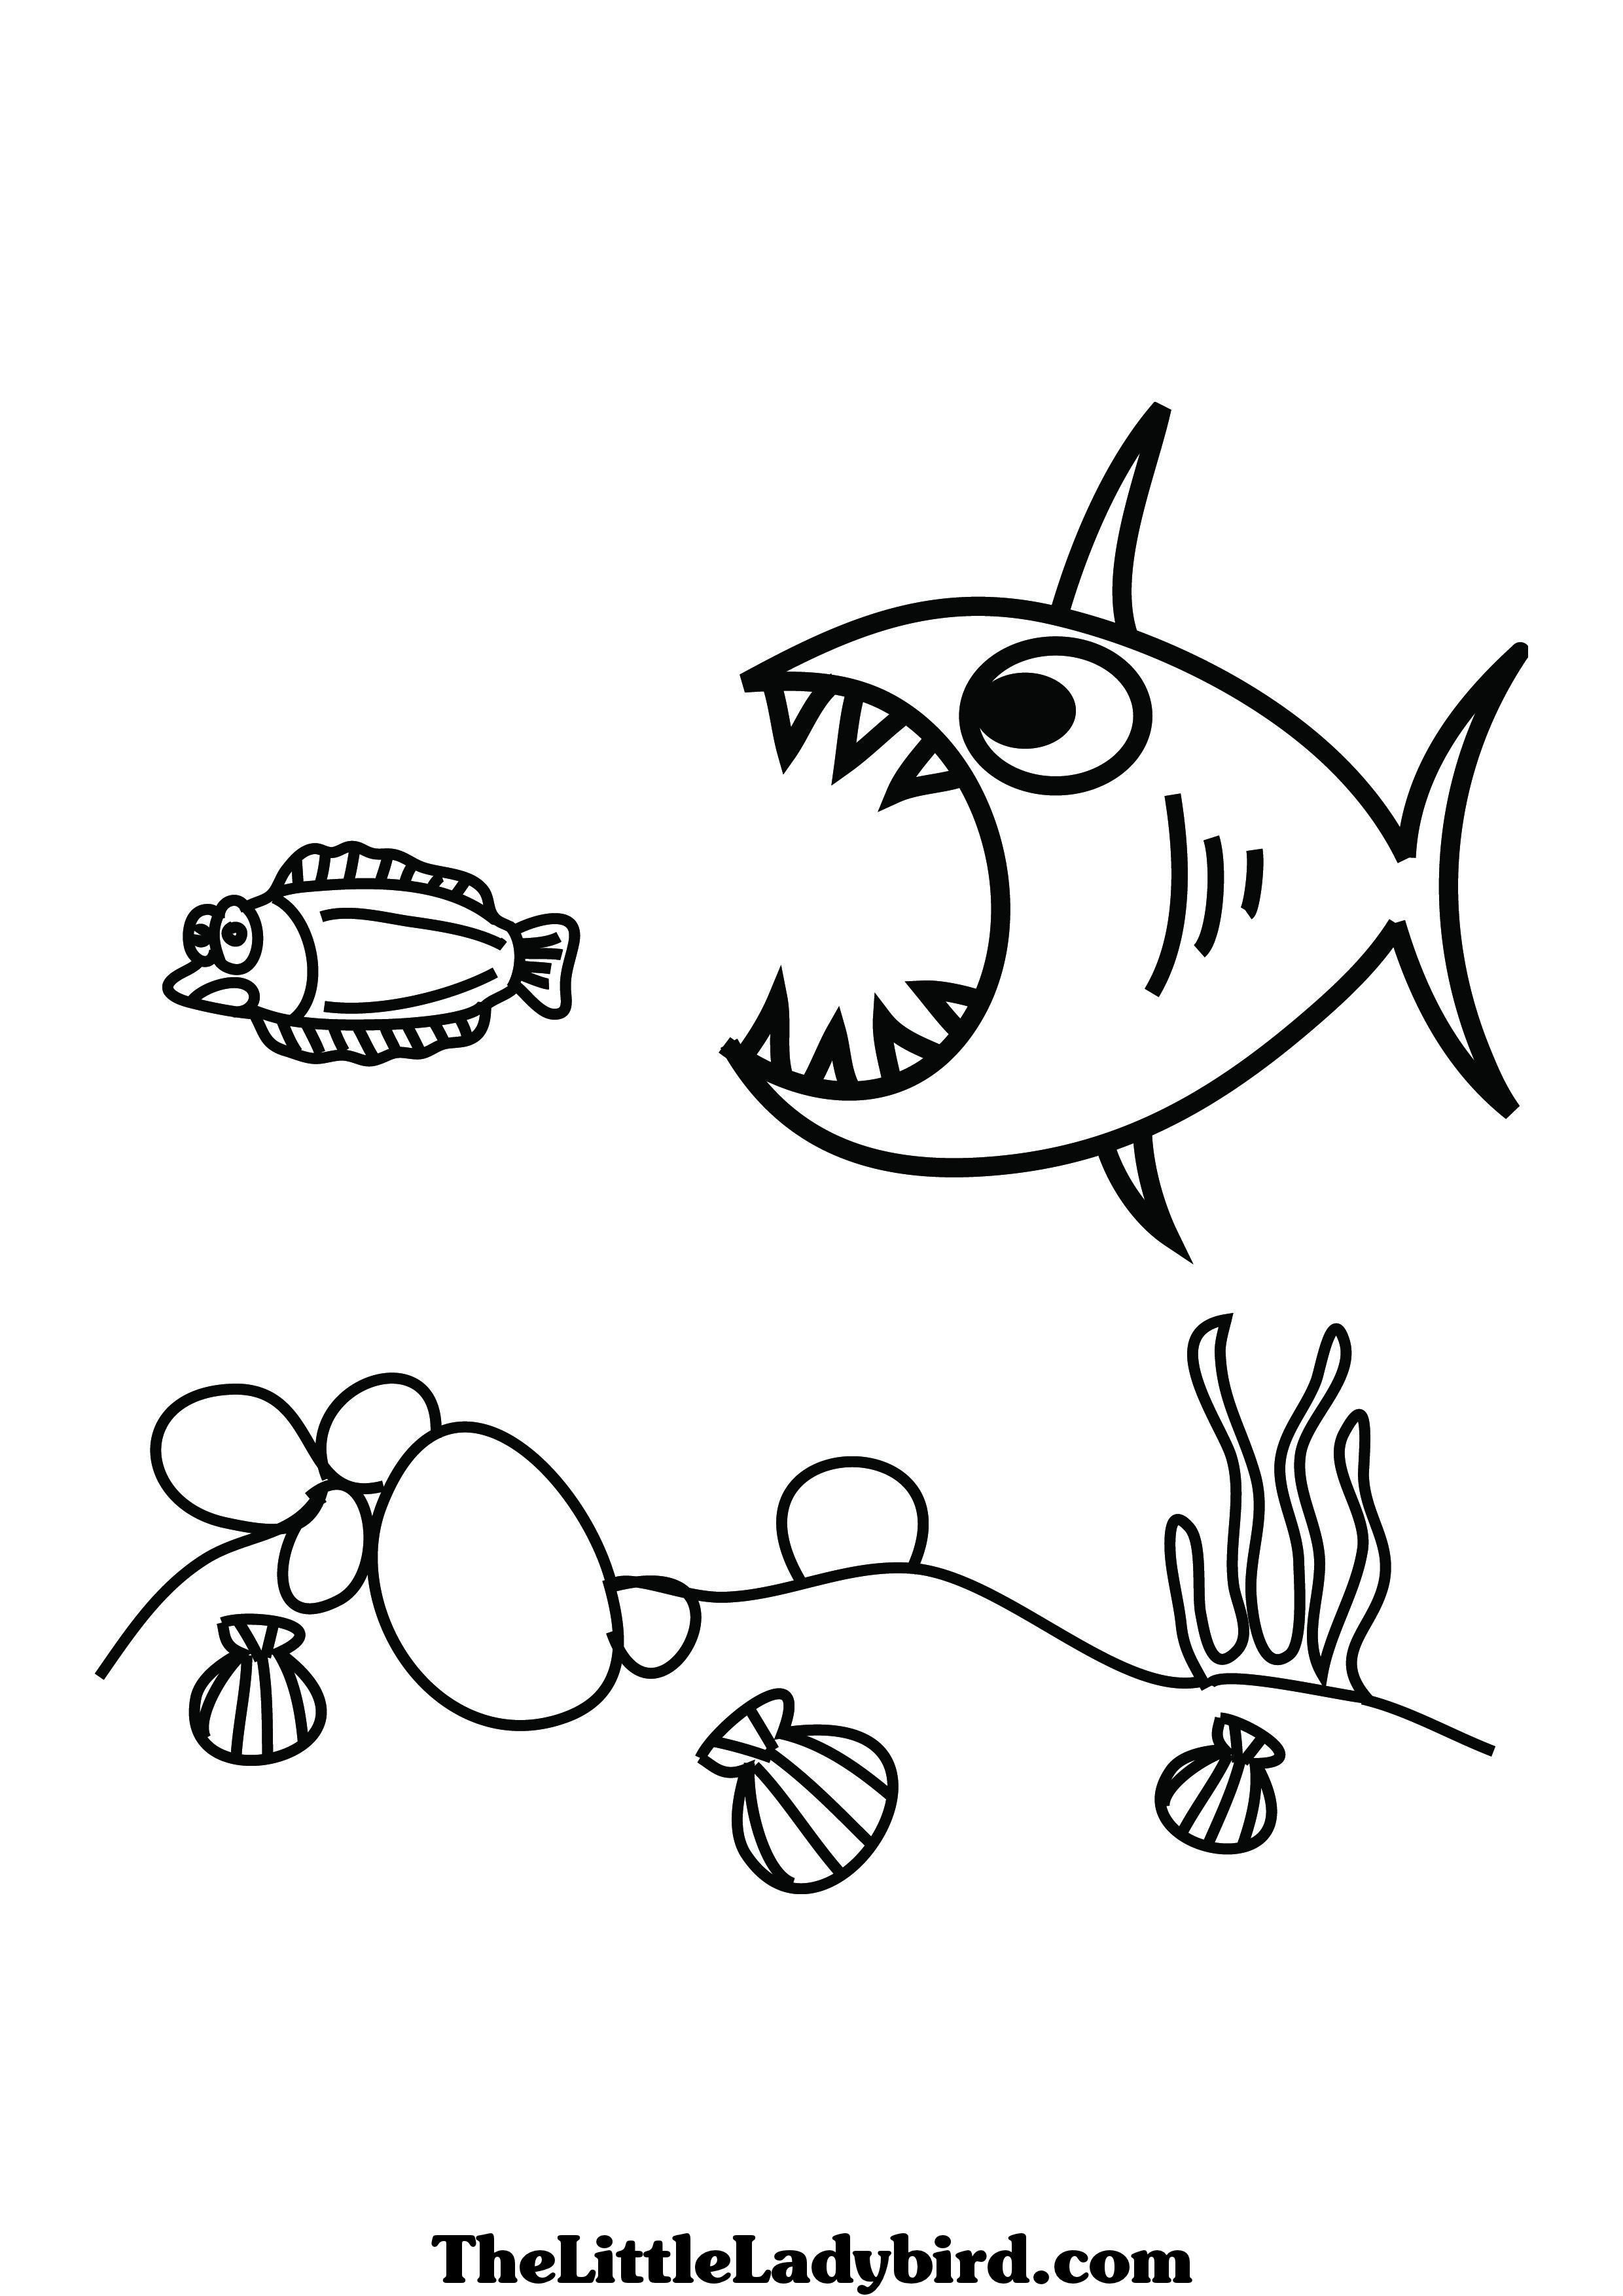 free small fish coloring pages | Small Fish Drawing at GetDrawings.com | Free for personal ...